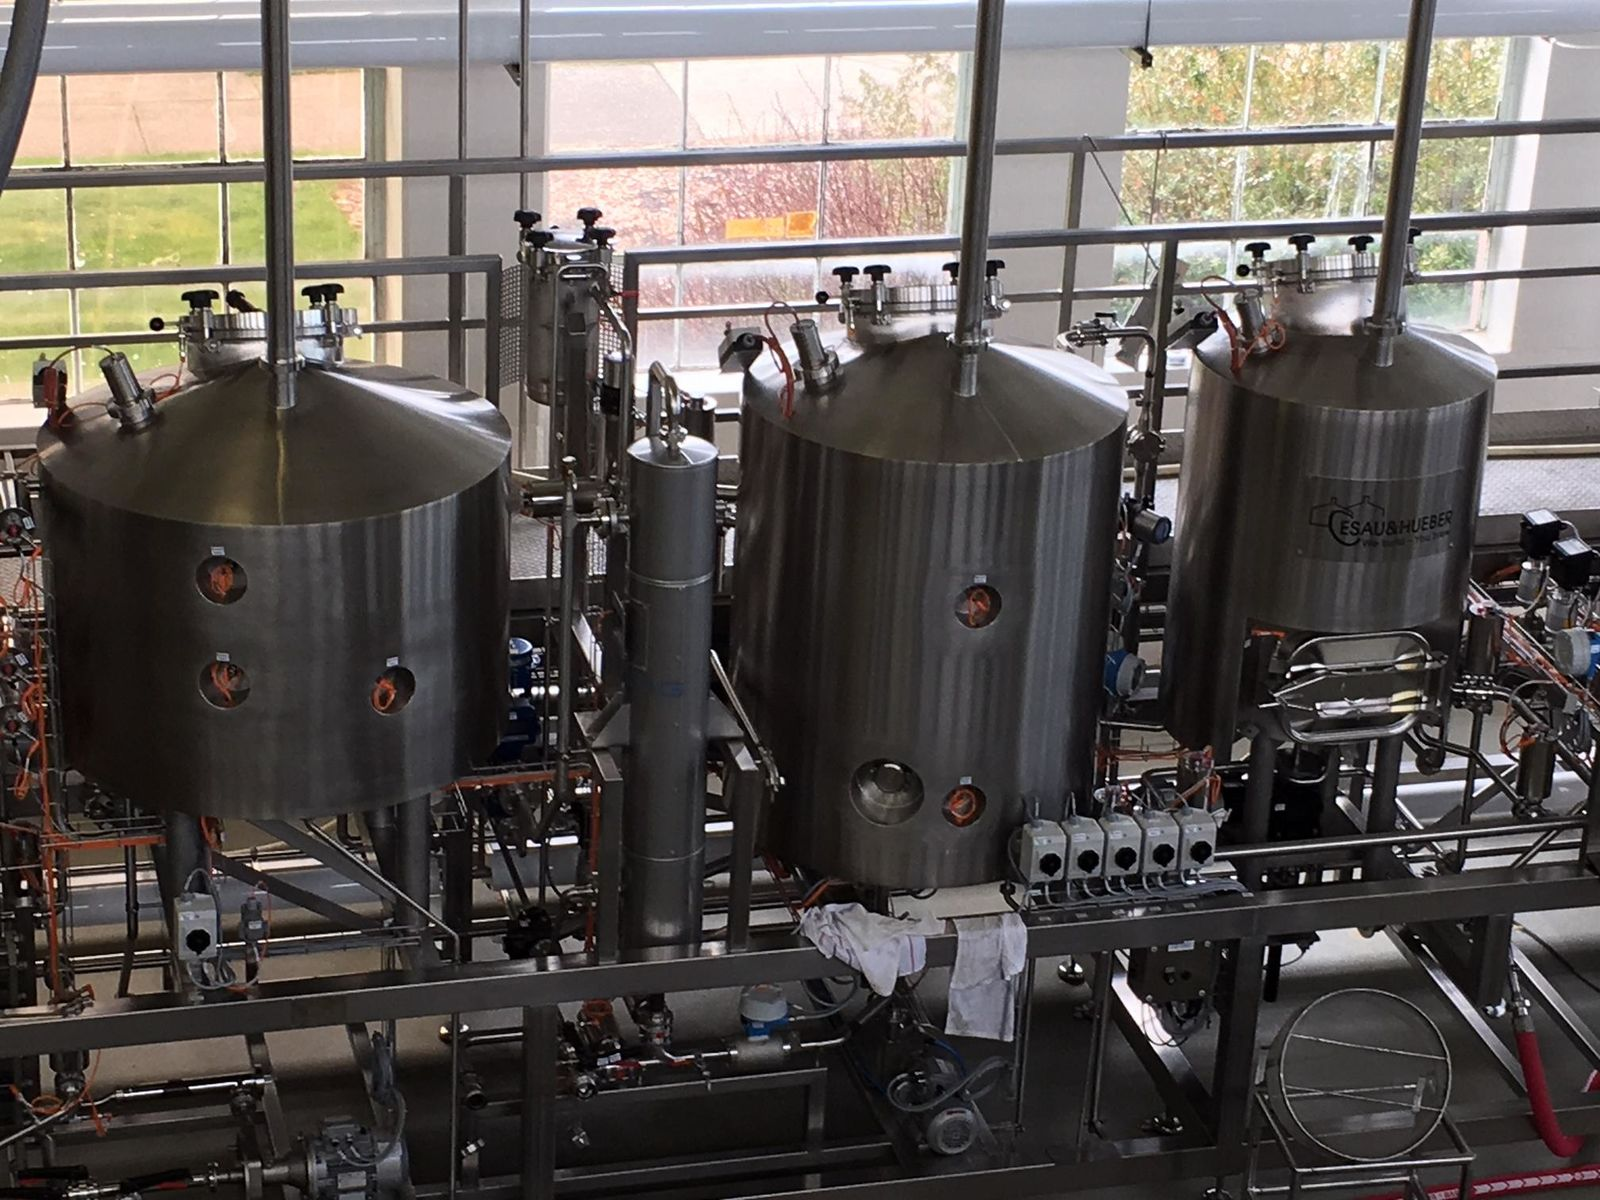 Oregon State University built a new research brewery thanks to a $1 million gift from Carlos Alvarez, chairman and chief executive officer of The Gambrinus Company, a San Antonio-based beer company that owns BridgePort Brewing Company in Portland, Oregon; the Spoetzl Brewery in Shiner, Texas; and the Trumer Brewery in Berkeley, California.{ }KVAL News took a tour of the new facility Thursday. (SBG)